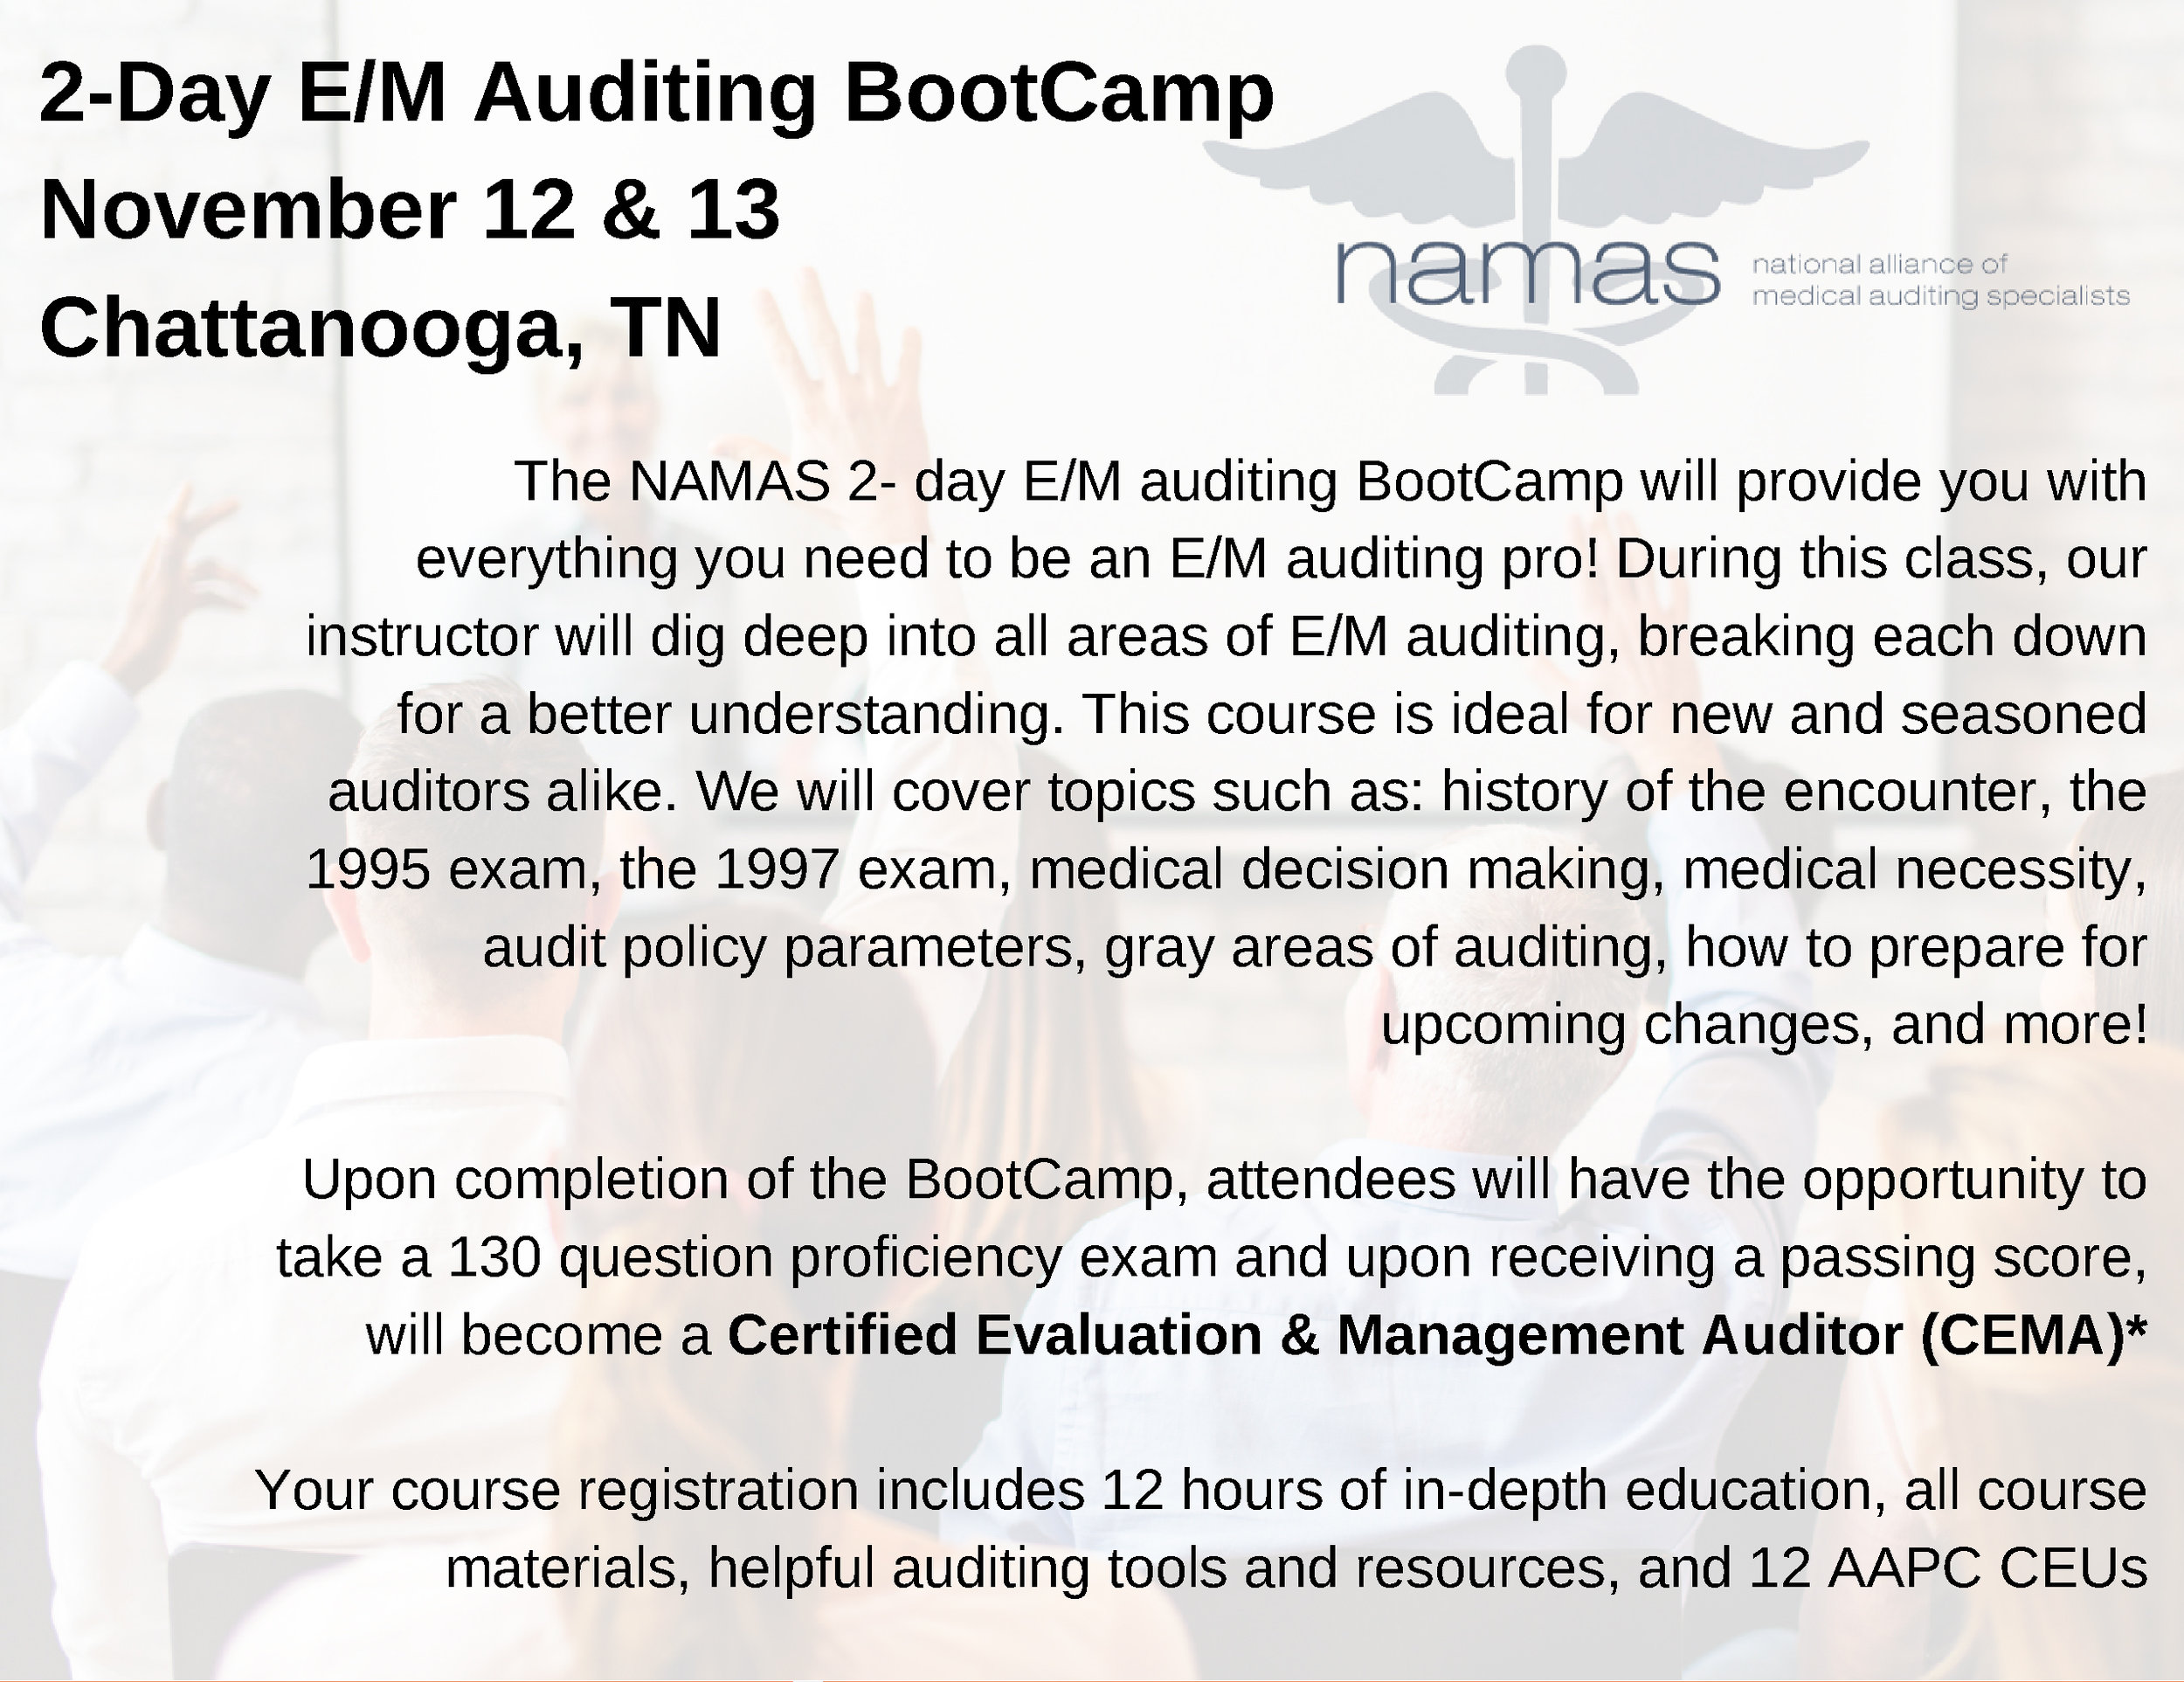 2-Day E/M Auditing BootCamp - Nov  12-13 — Medical Society